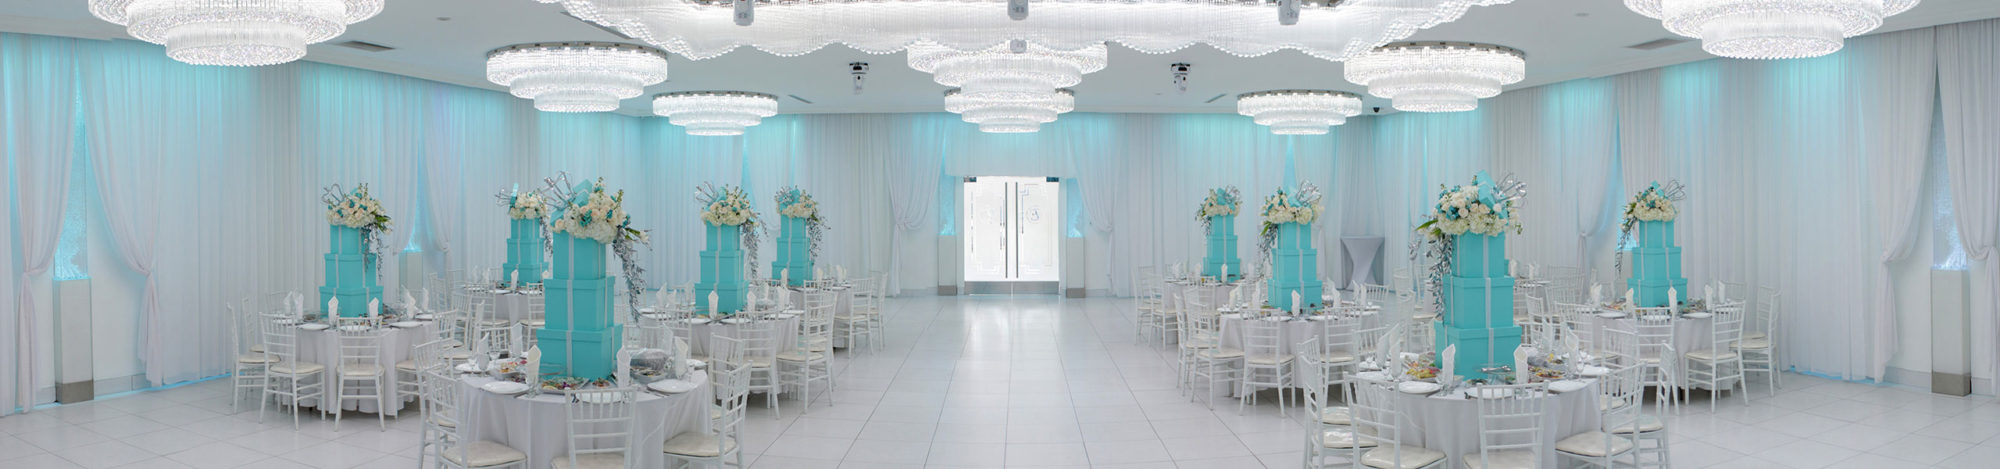 blush-banquet-hall-venue